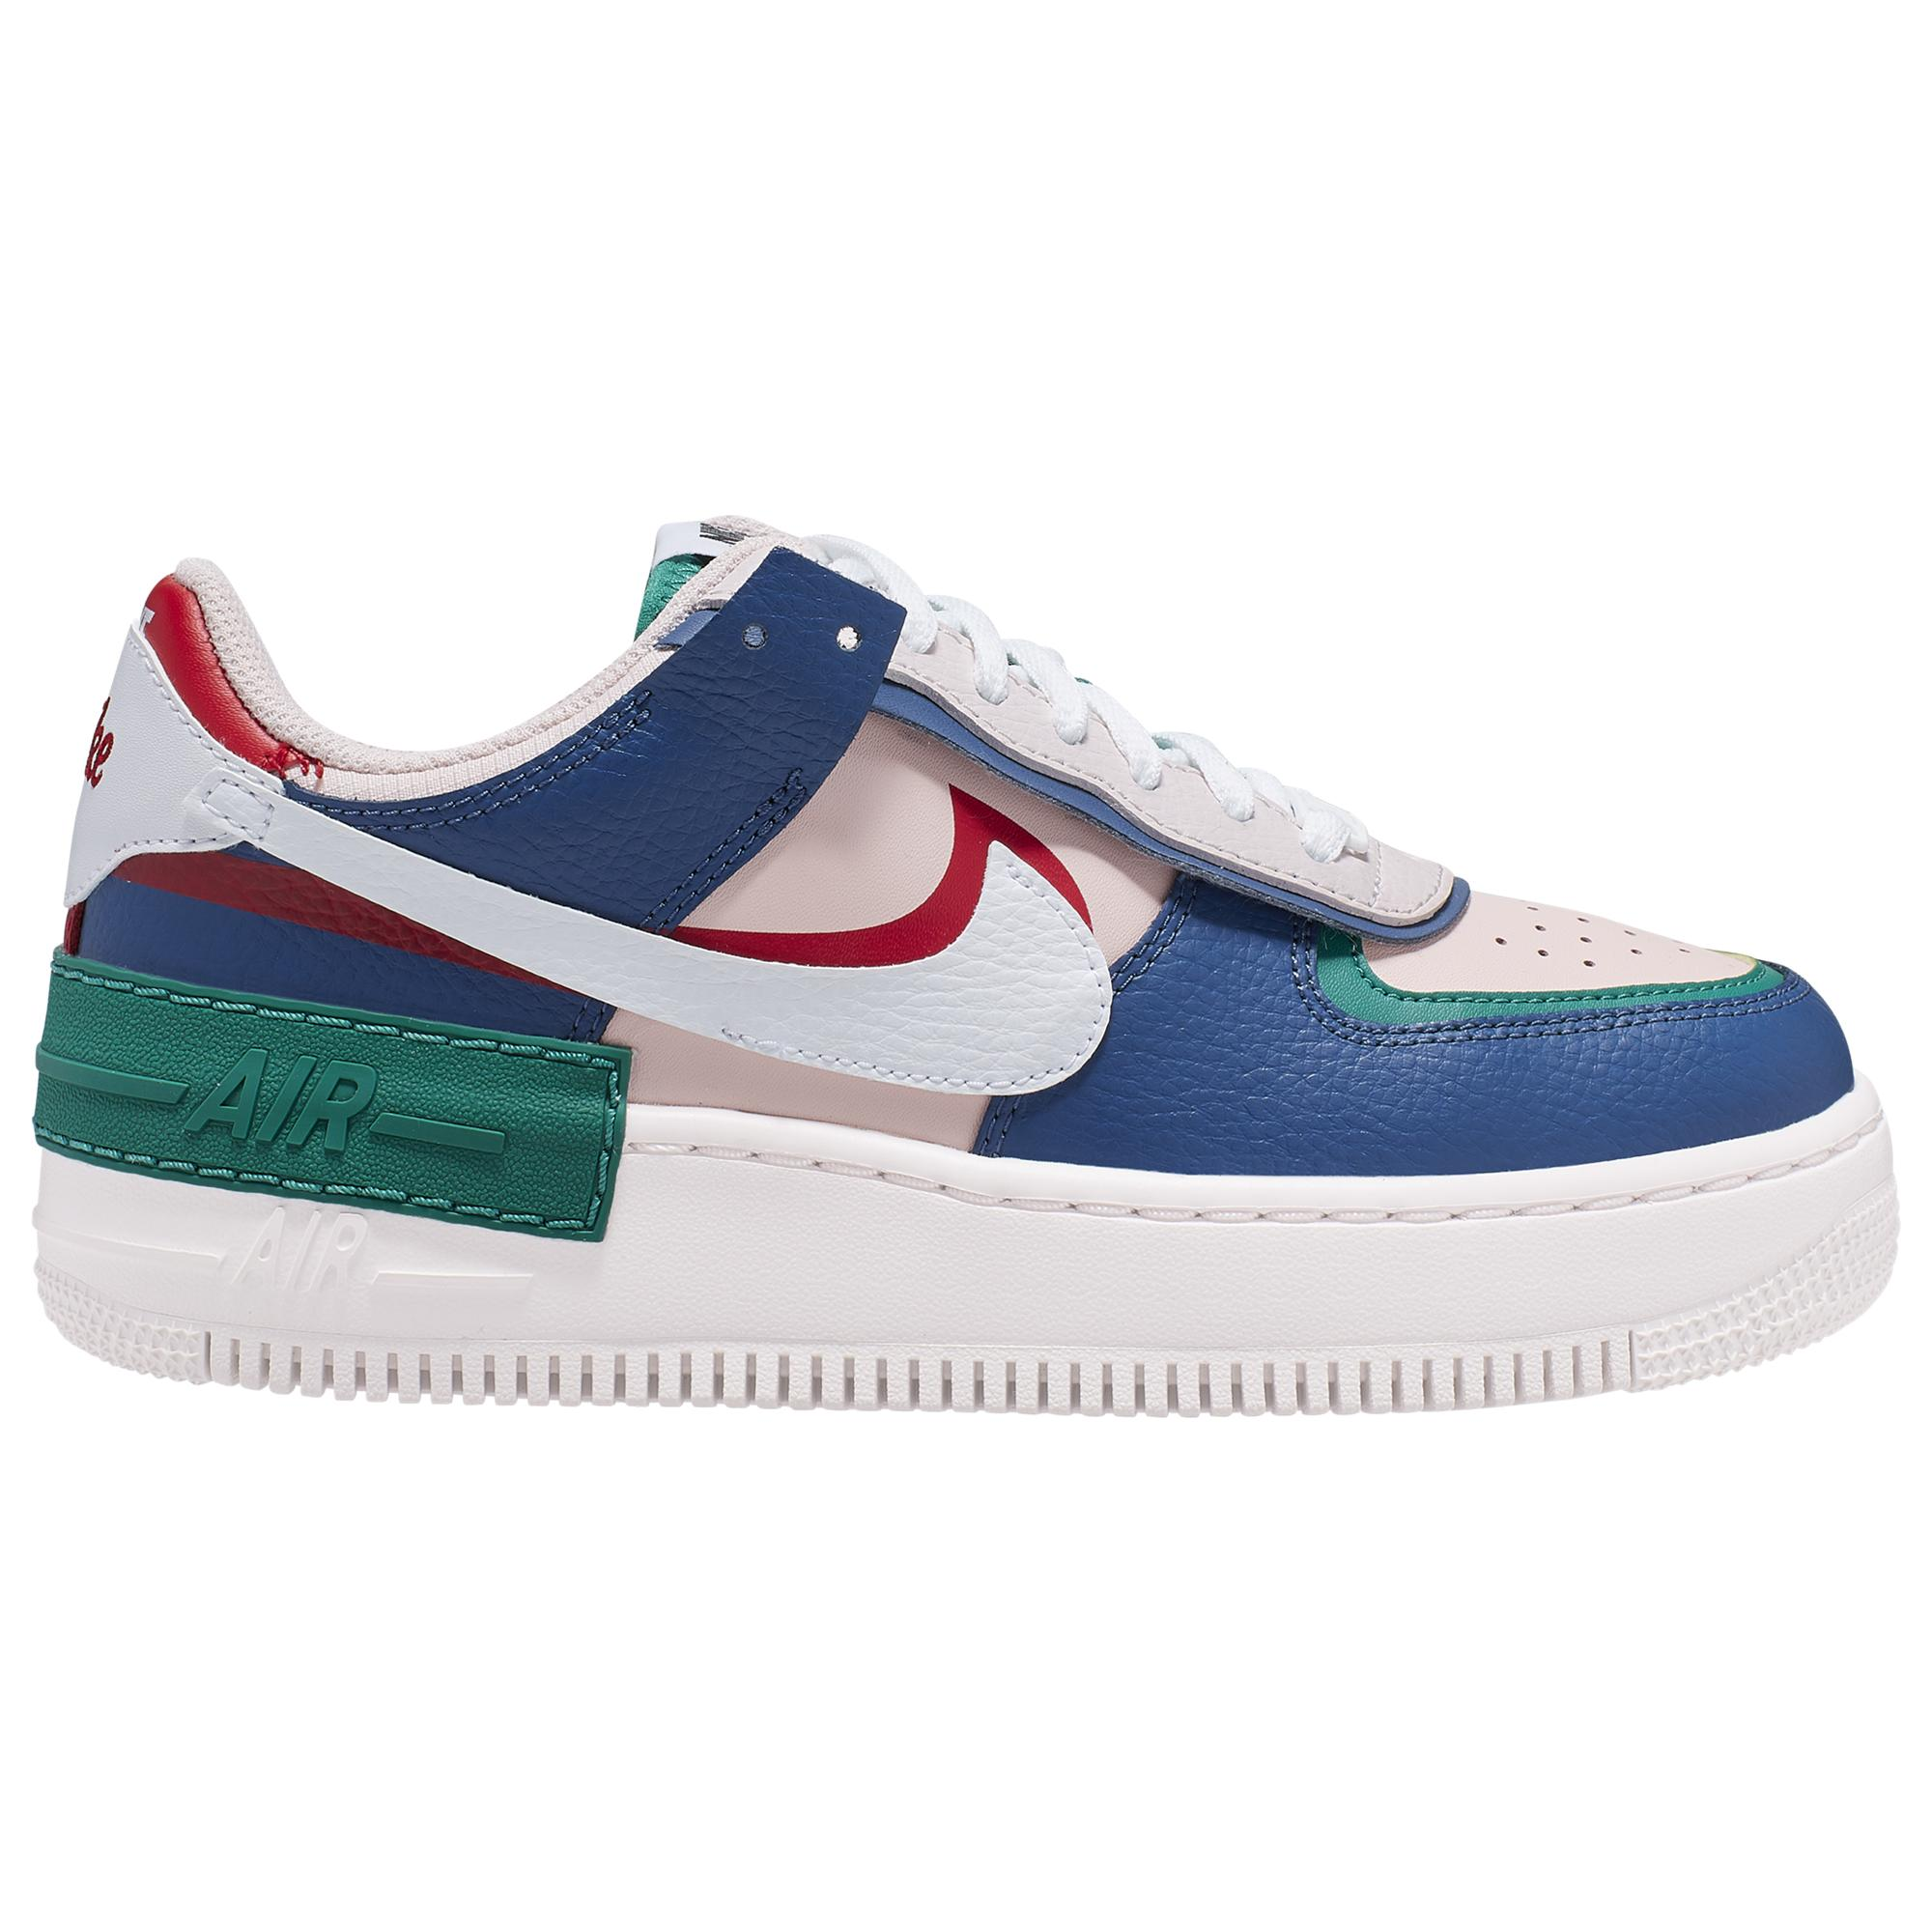 Nike Leather Air Force 1 Shadow Low-top sneakers in Navy/Pink ...